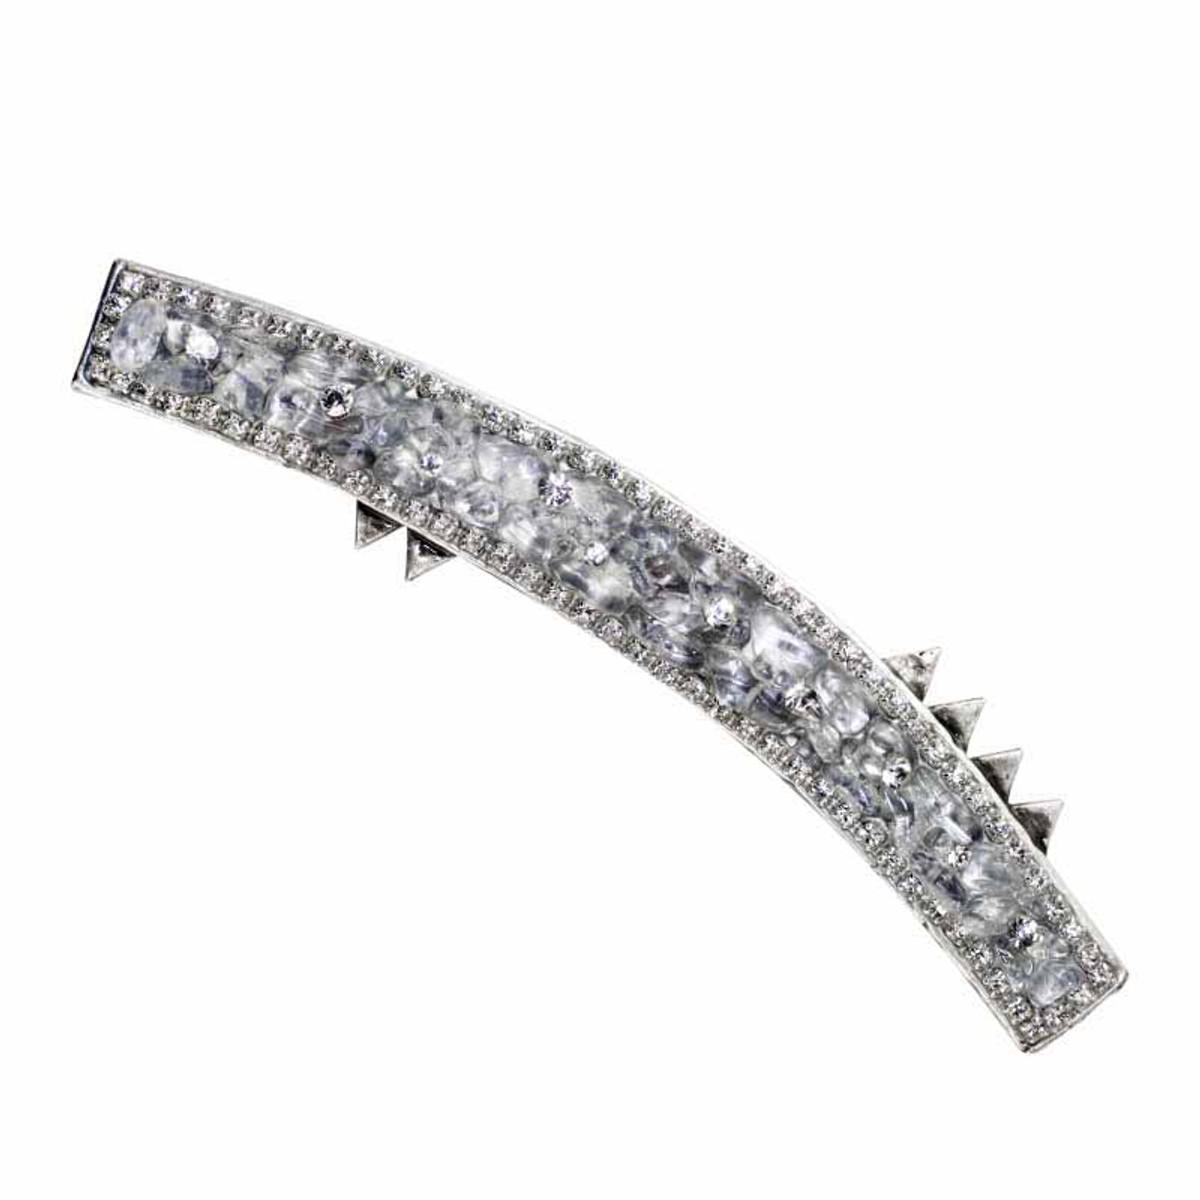 Michal Golan Icy Dreams Long Curved Brooch